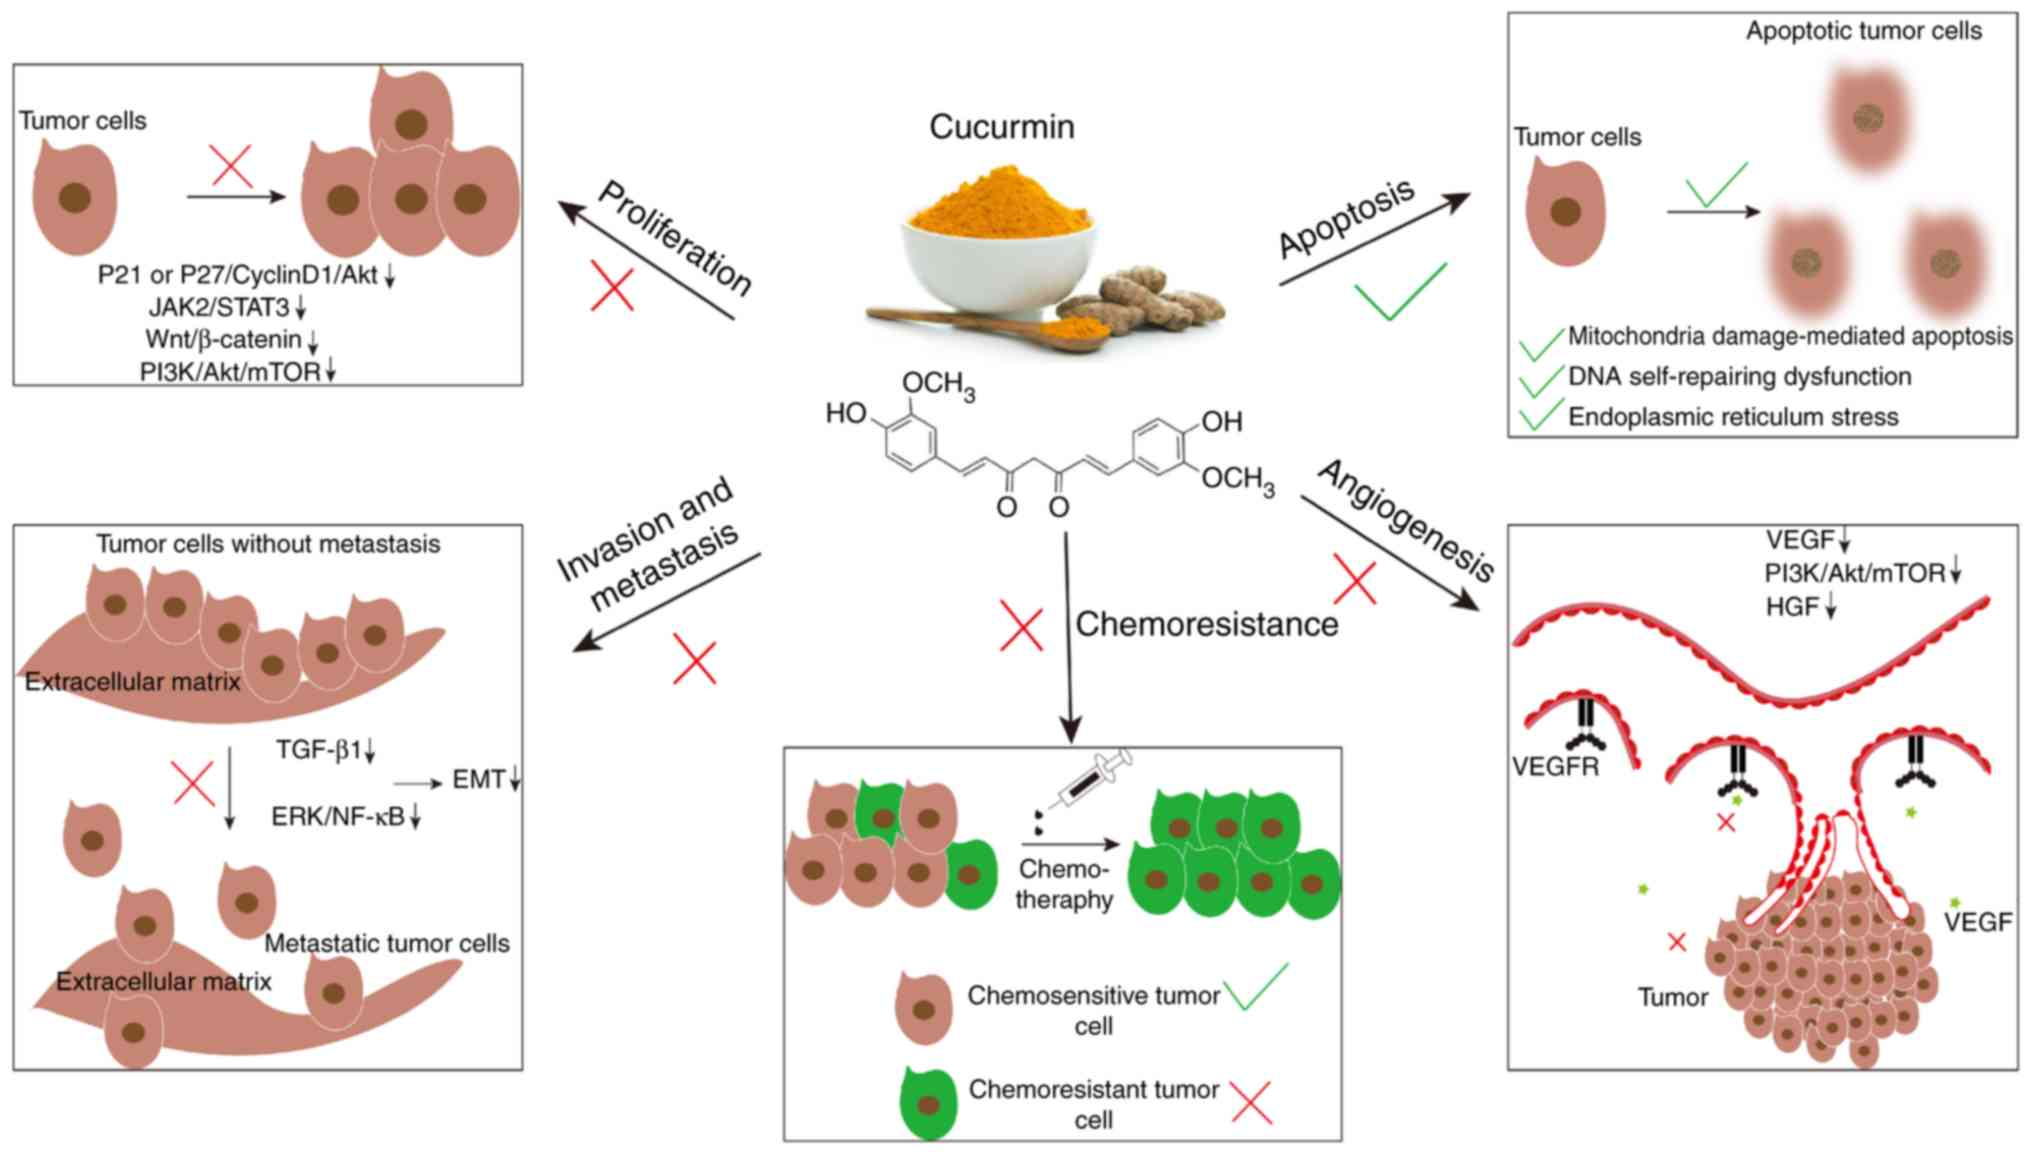 The Roles Of Curcumin In Regulating The Tumor Immunosuppressive Microenvironment Review